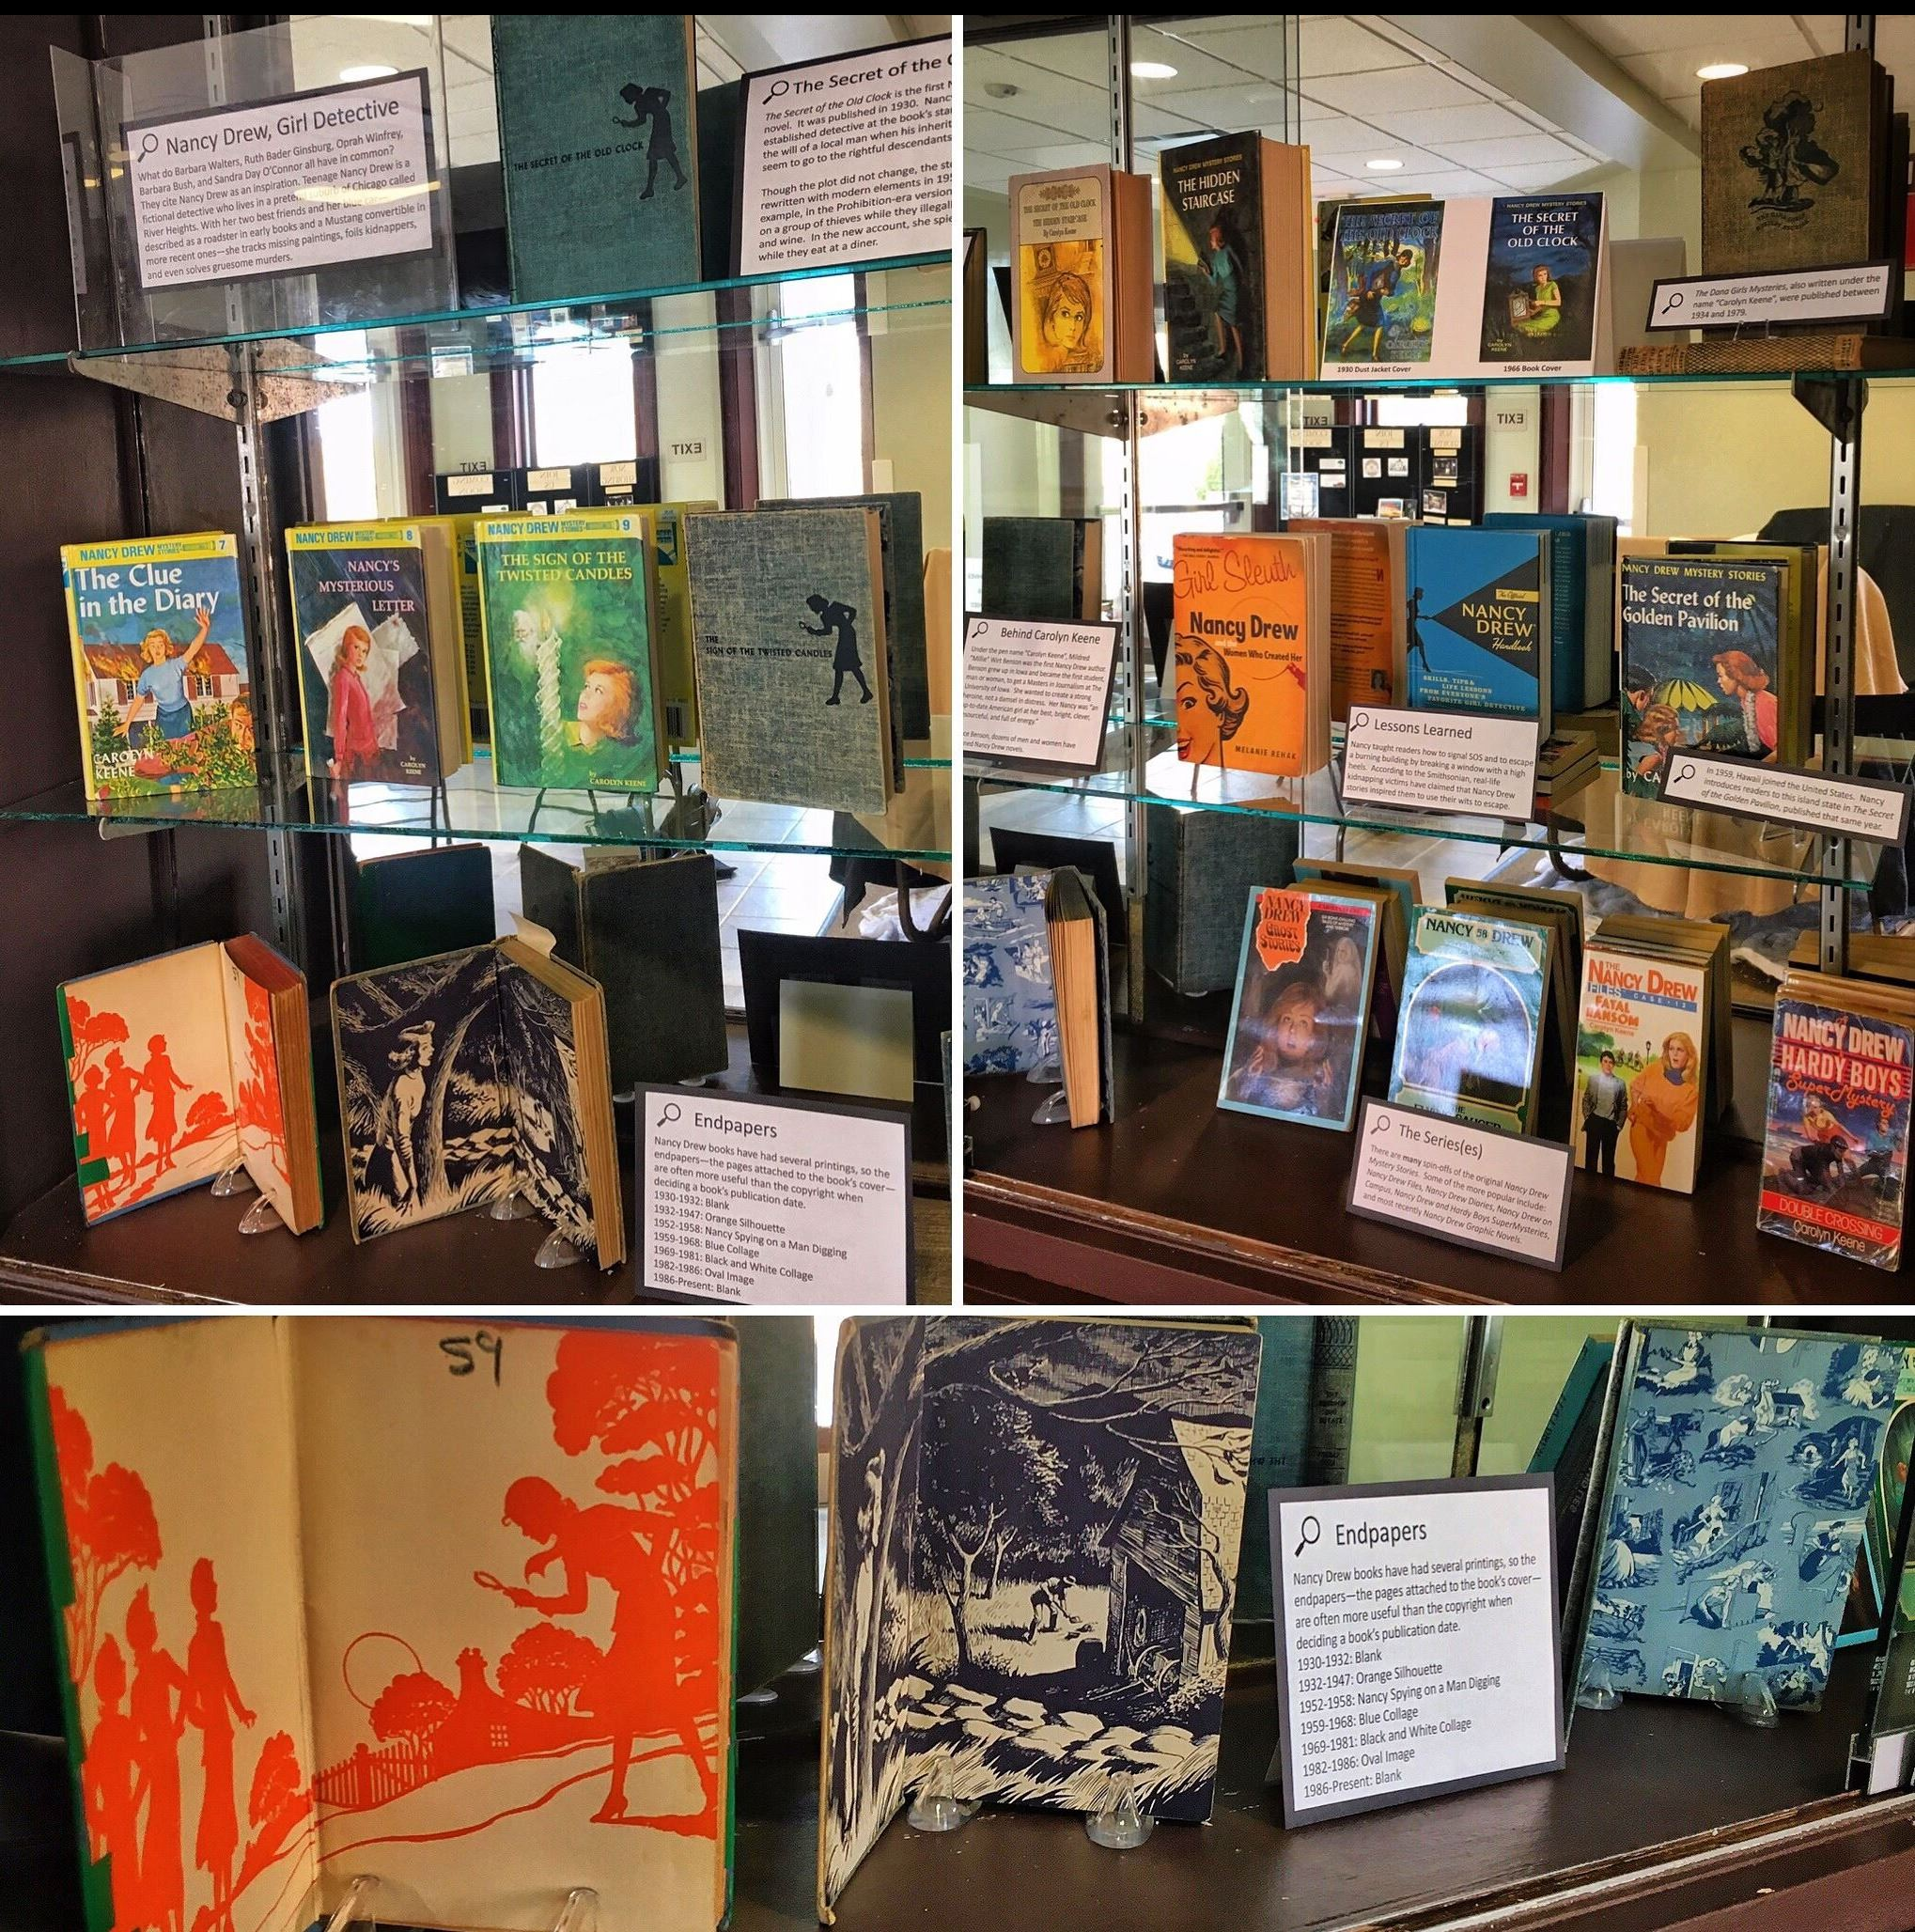 Nancy Drew book collection of a Grayslake resident on display